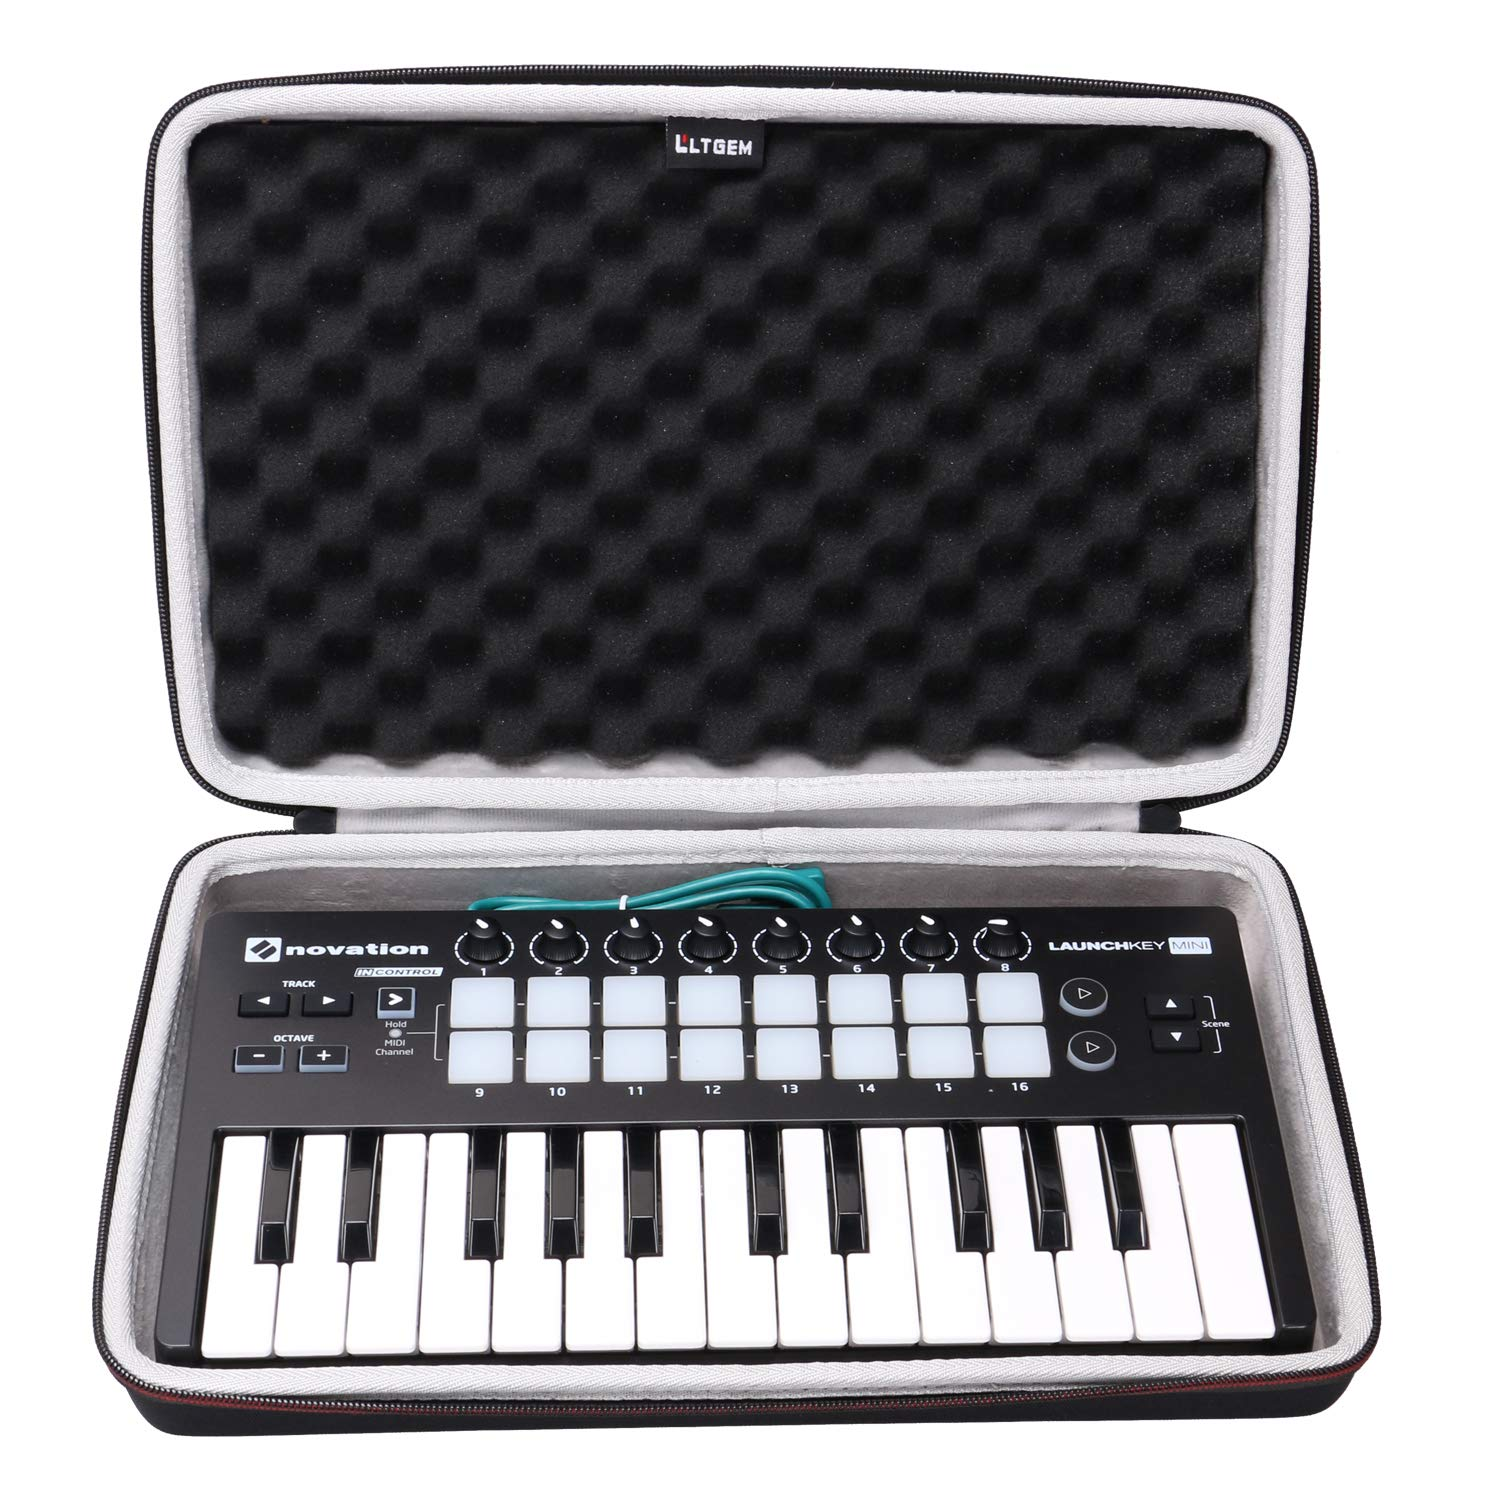 LTGEM EVA Hard Case for Novation Launchkey Mini 25-Note USB Keyboard MK2 Controller - Travel Protective Carrying Storage Bag CS294